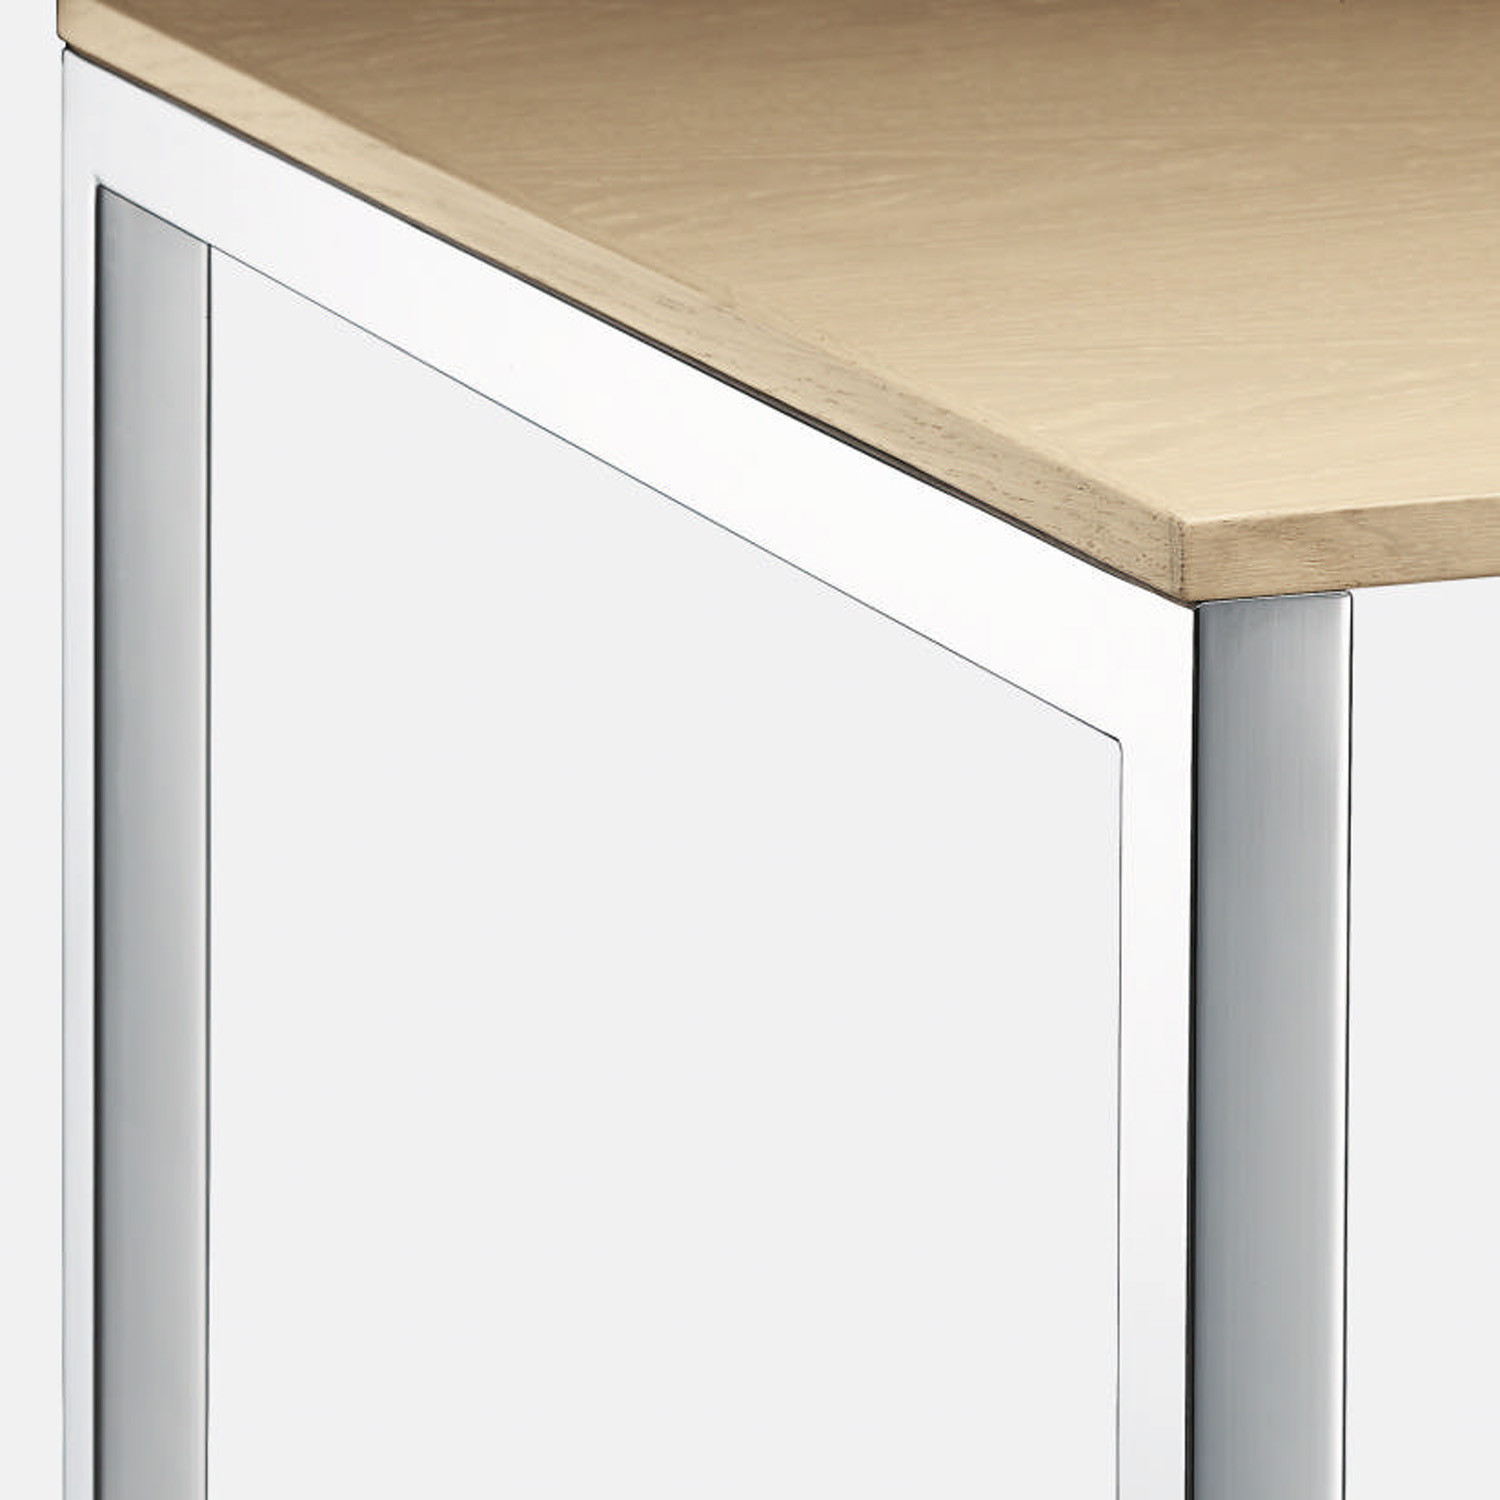 MilanoClassic Table has a square section steel frame